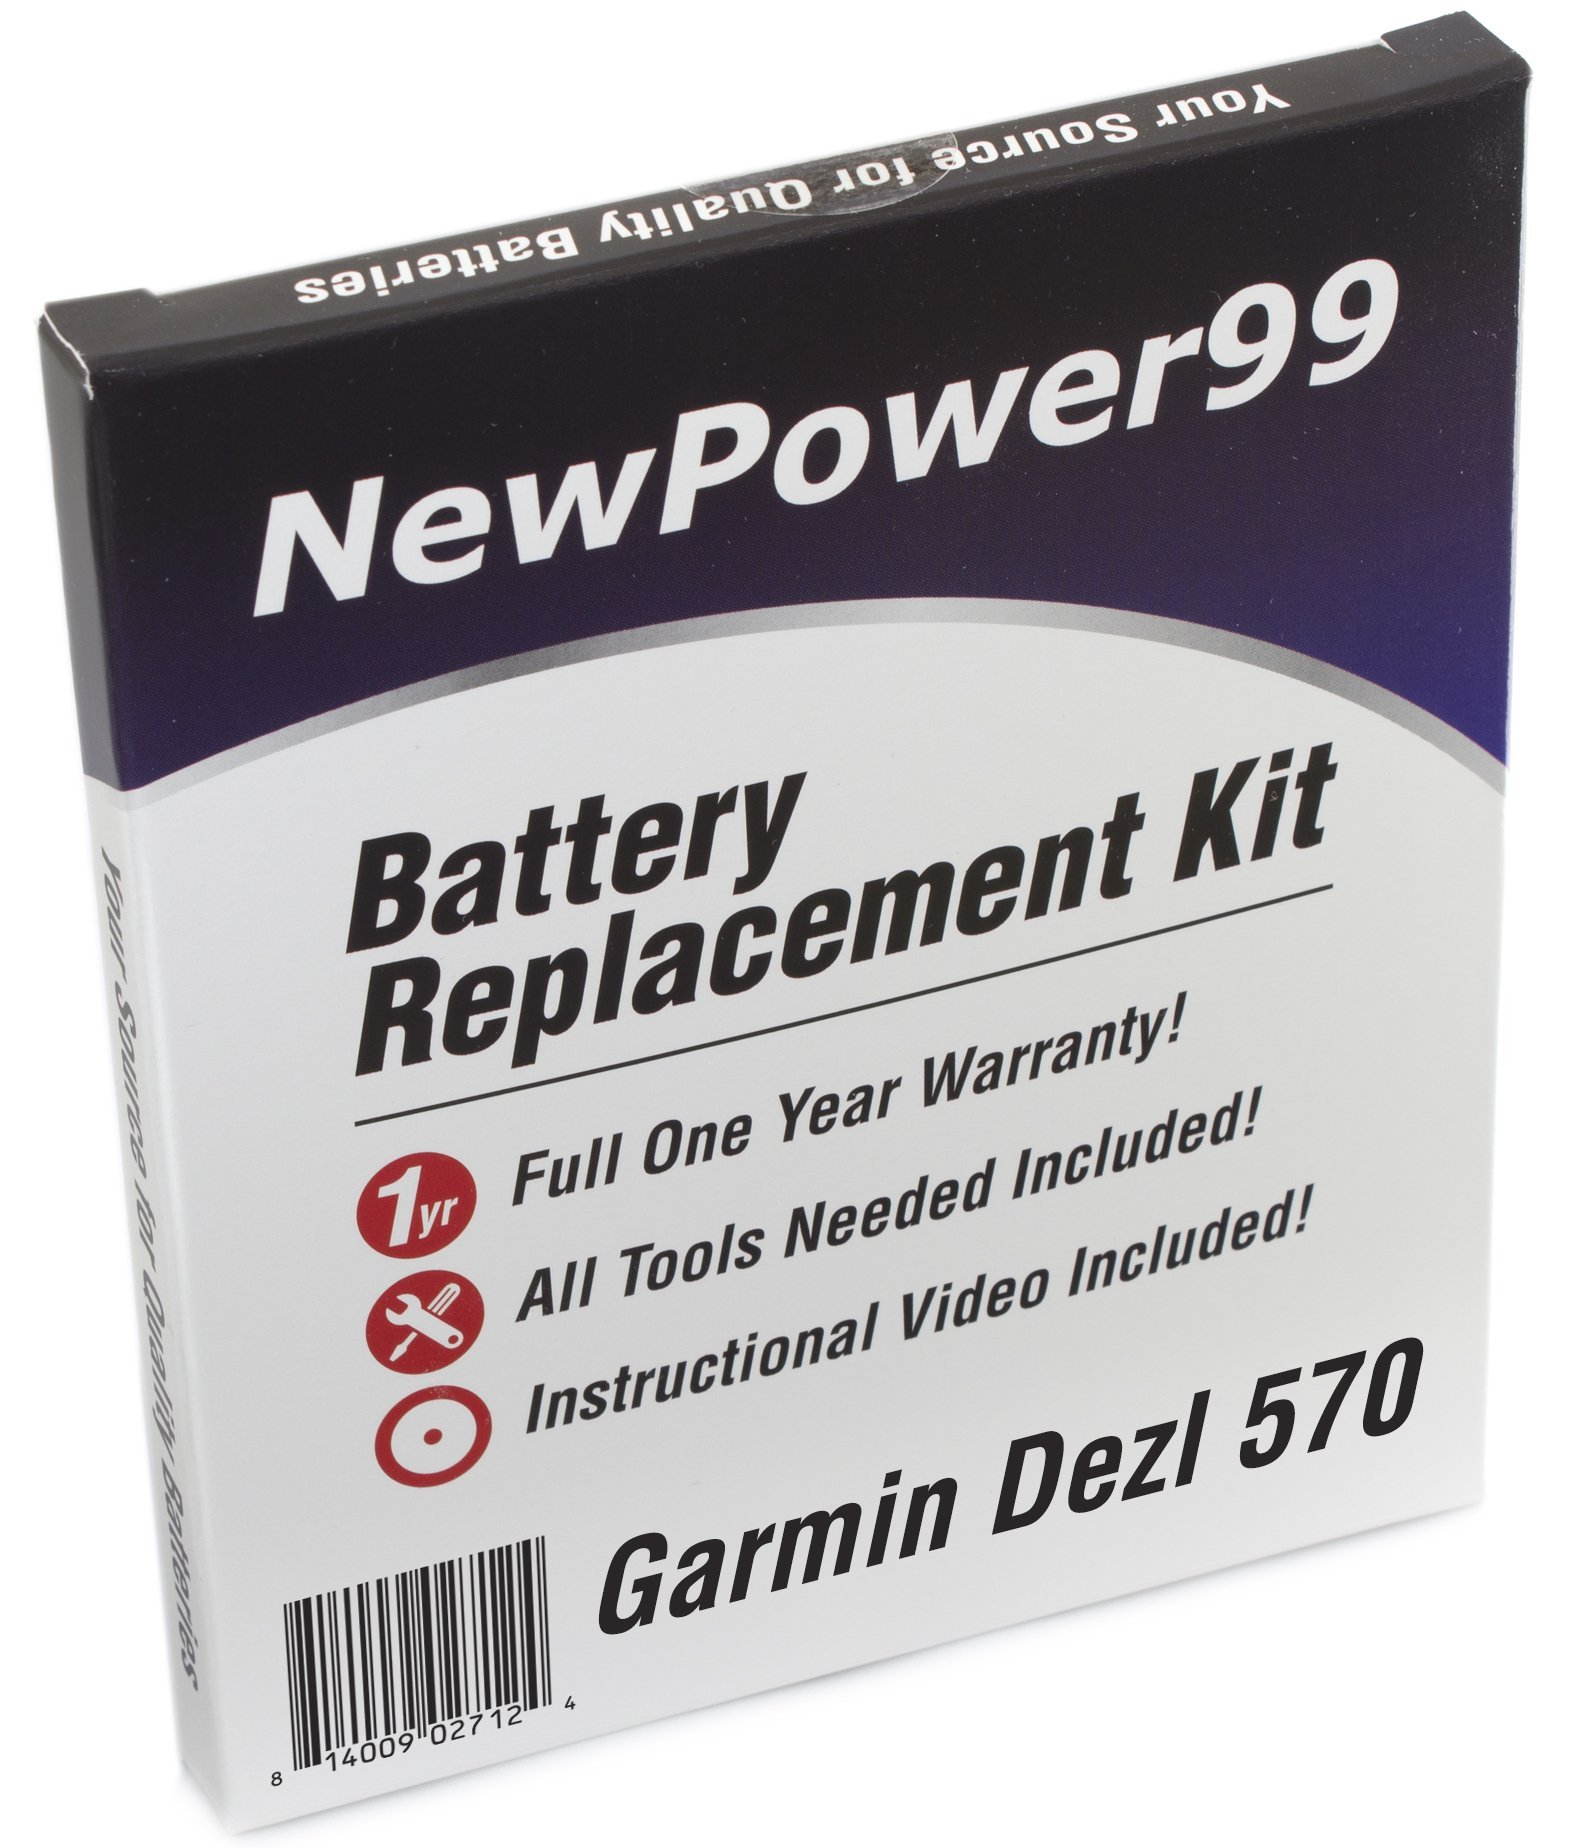 NewPower99 Battery Replacement Kit for Garmin Dezl 570 with Installation Video, Tools, and Extended Life Battery.